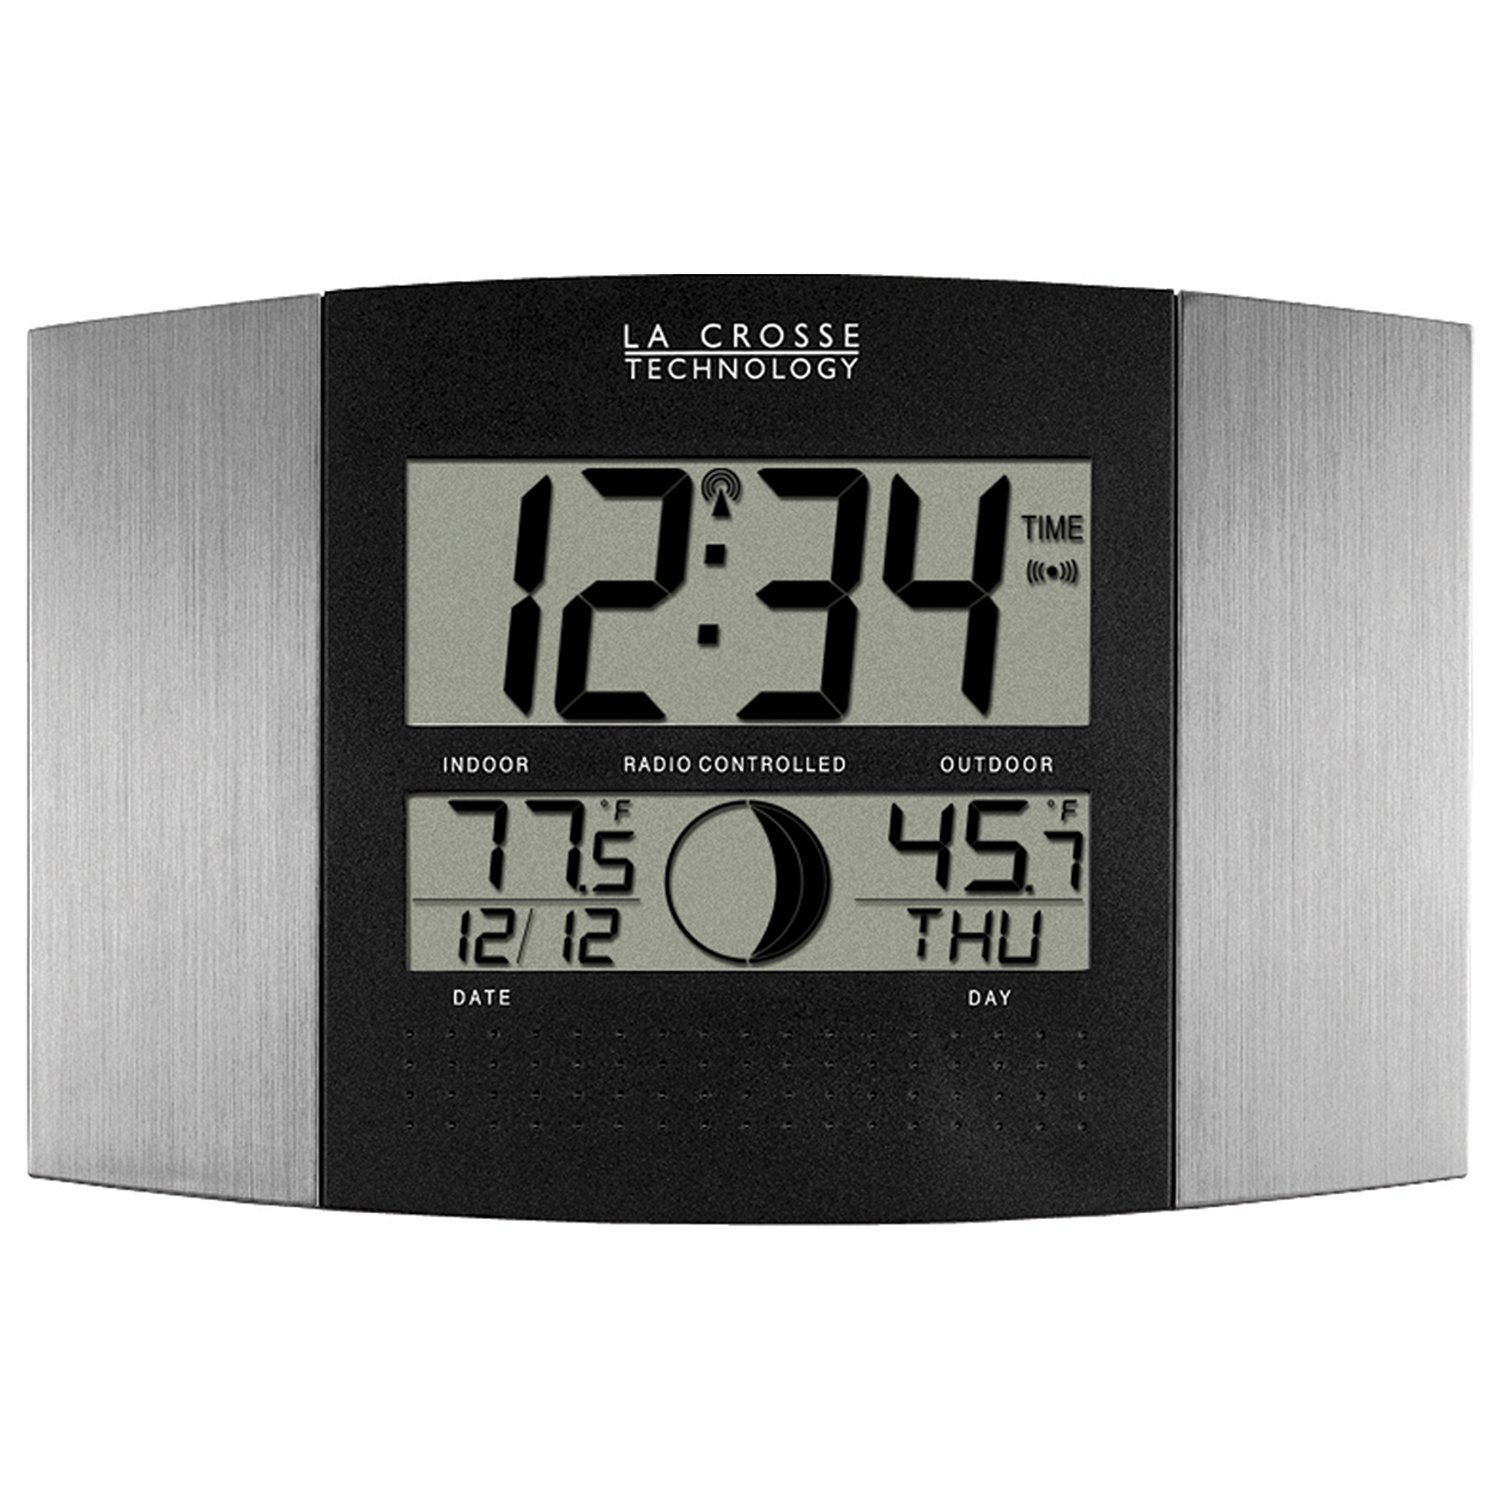 La Crosse Technology WS-8117U-IT-AL Atomic Wall Clock with Indoor/Outdoor Temperature by La Crosse Technology